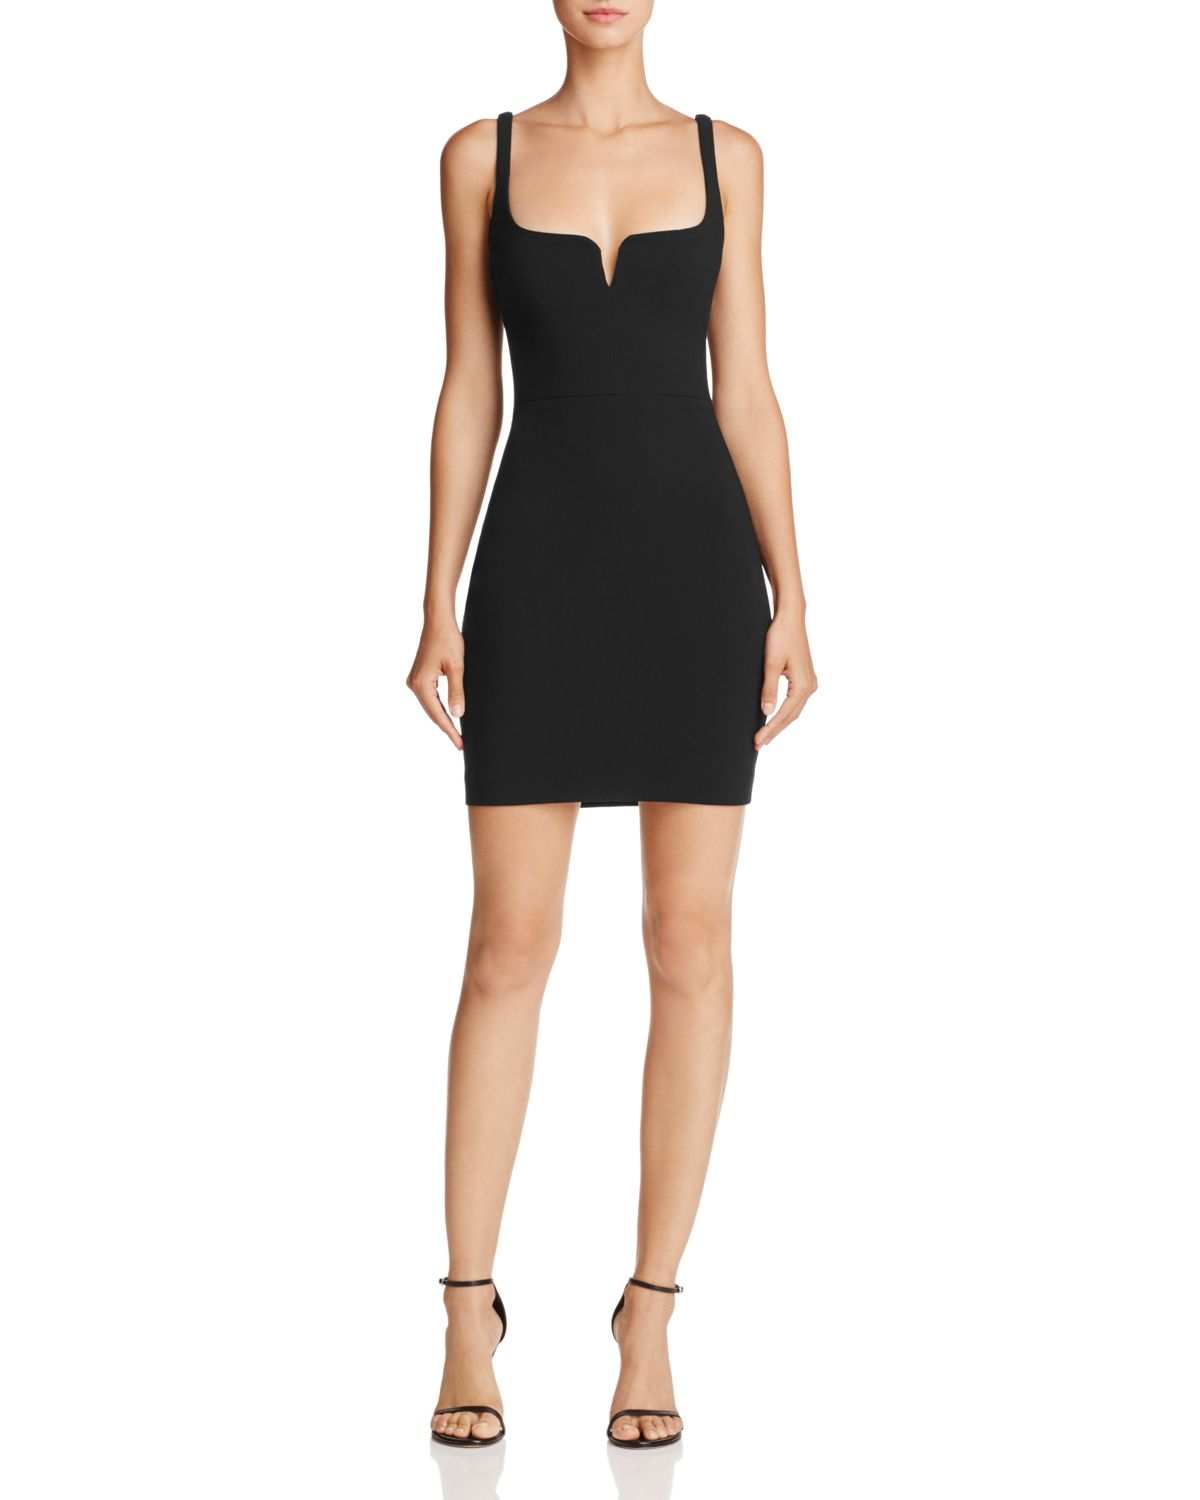 Constance Body Con Dress   100 Percents Exclusive by Likely